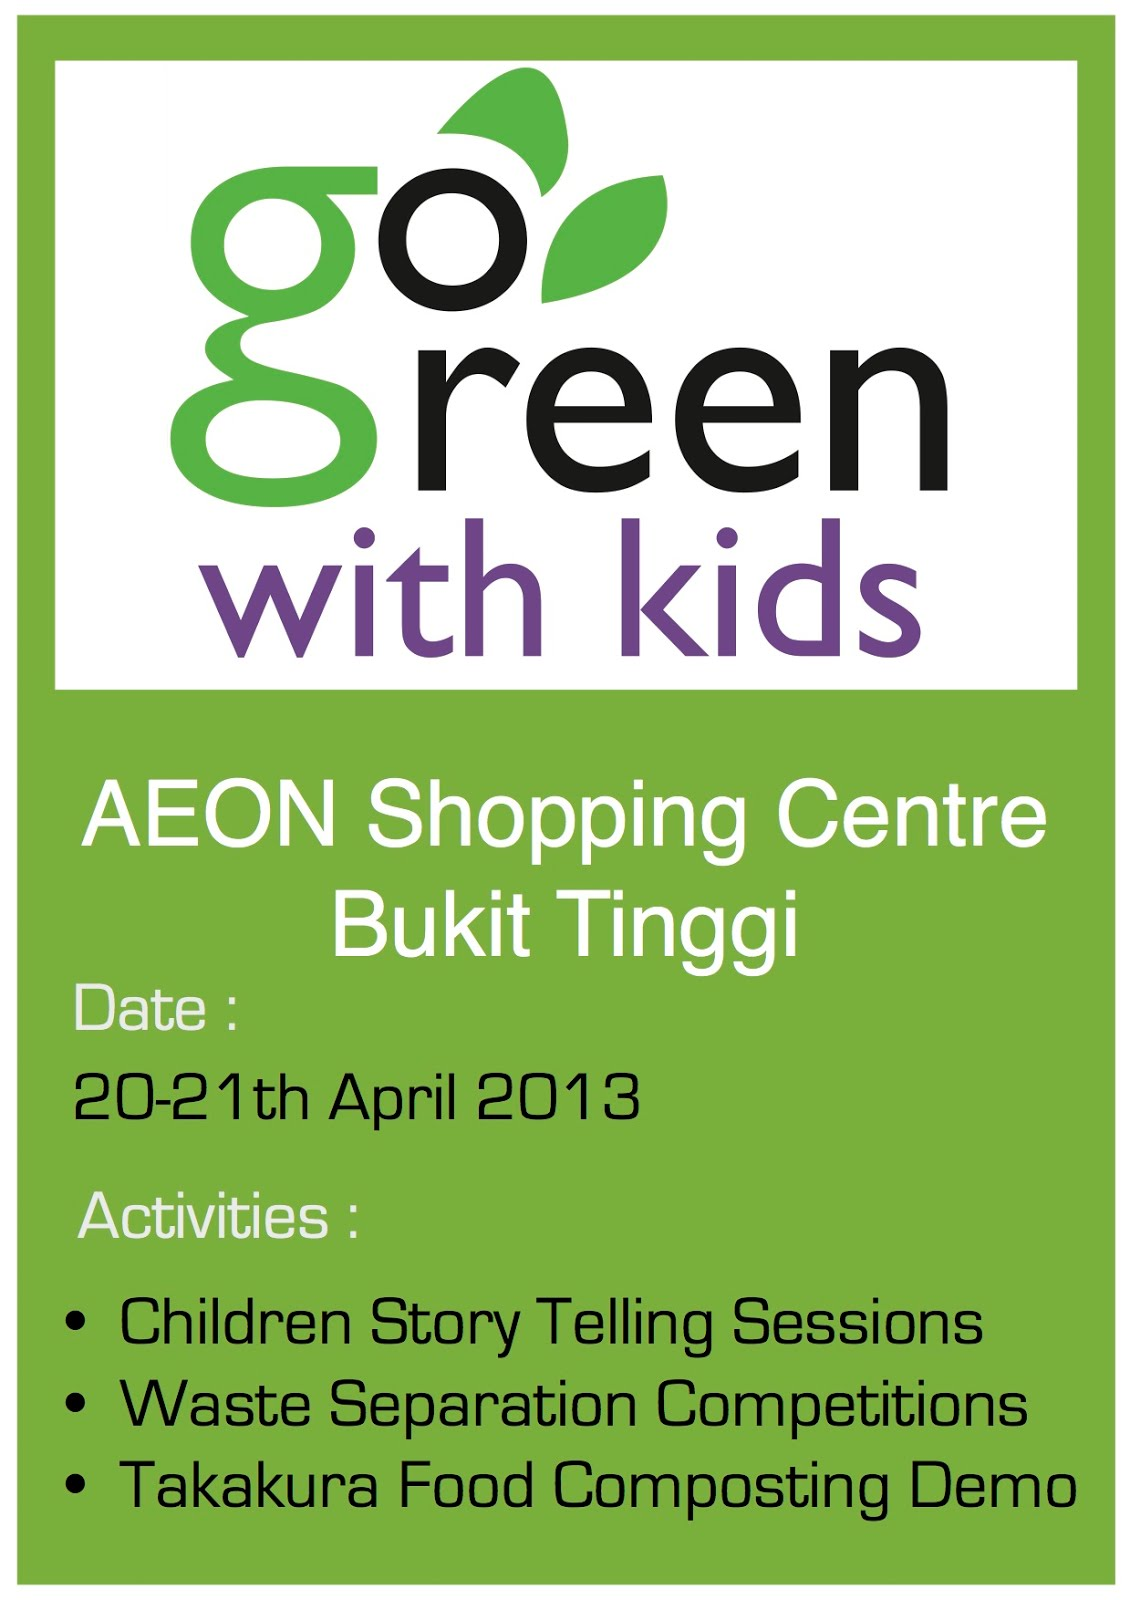 Go Green With Kids   绿化家庭日 AEON Bukit Tinggi